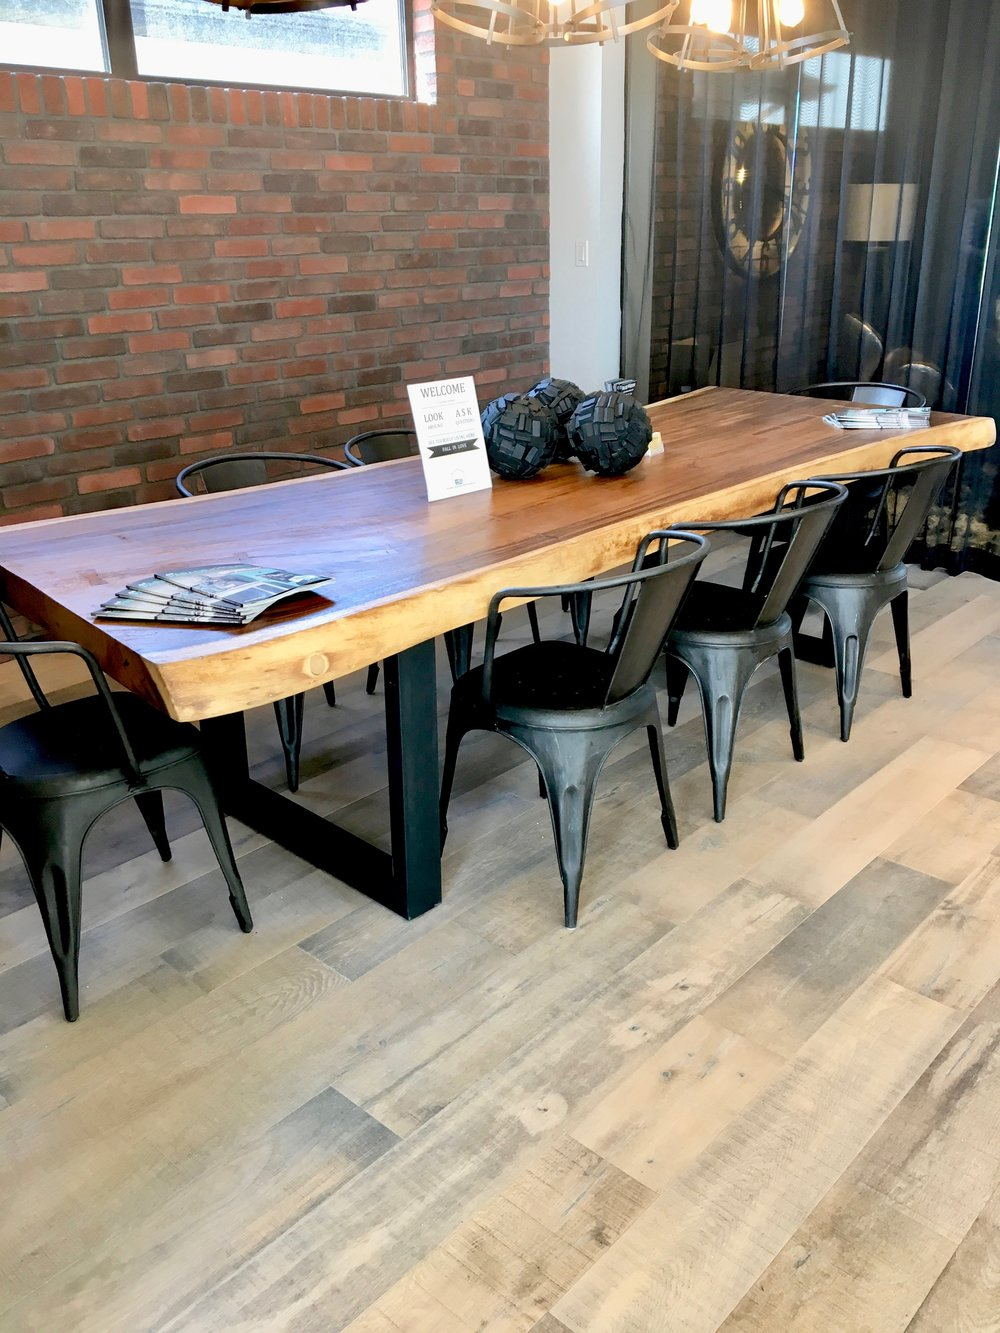 Artista show home furniture blue moon furniture winnipeg fall parade of homes 2017 show